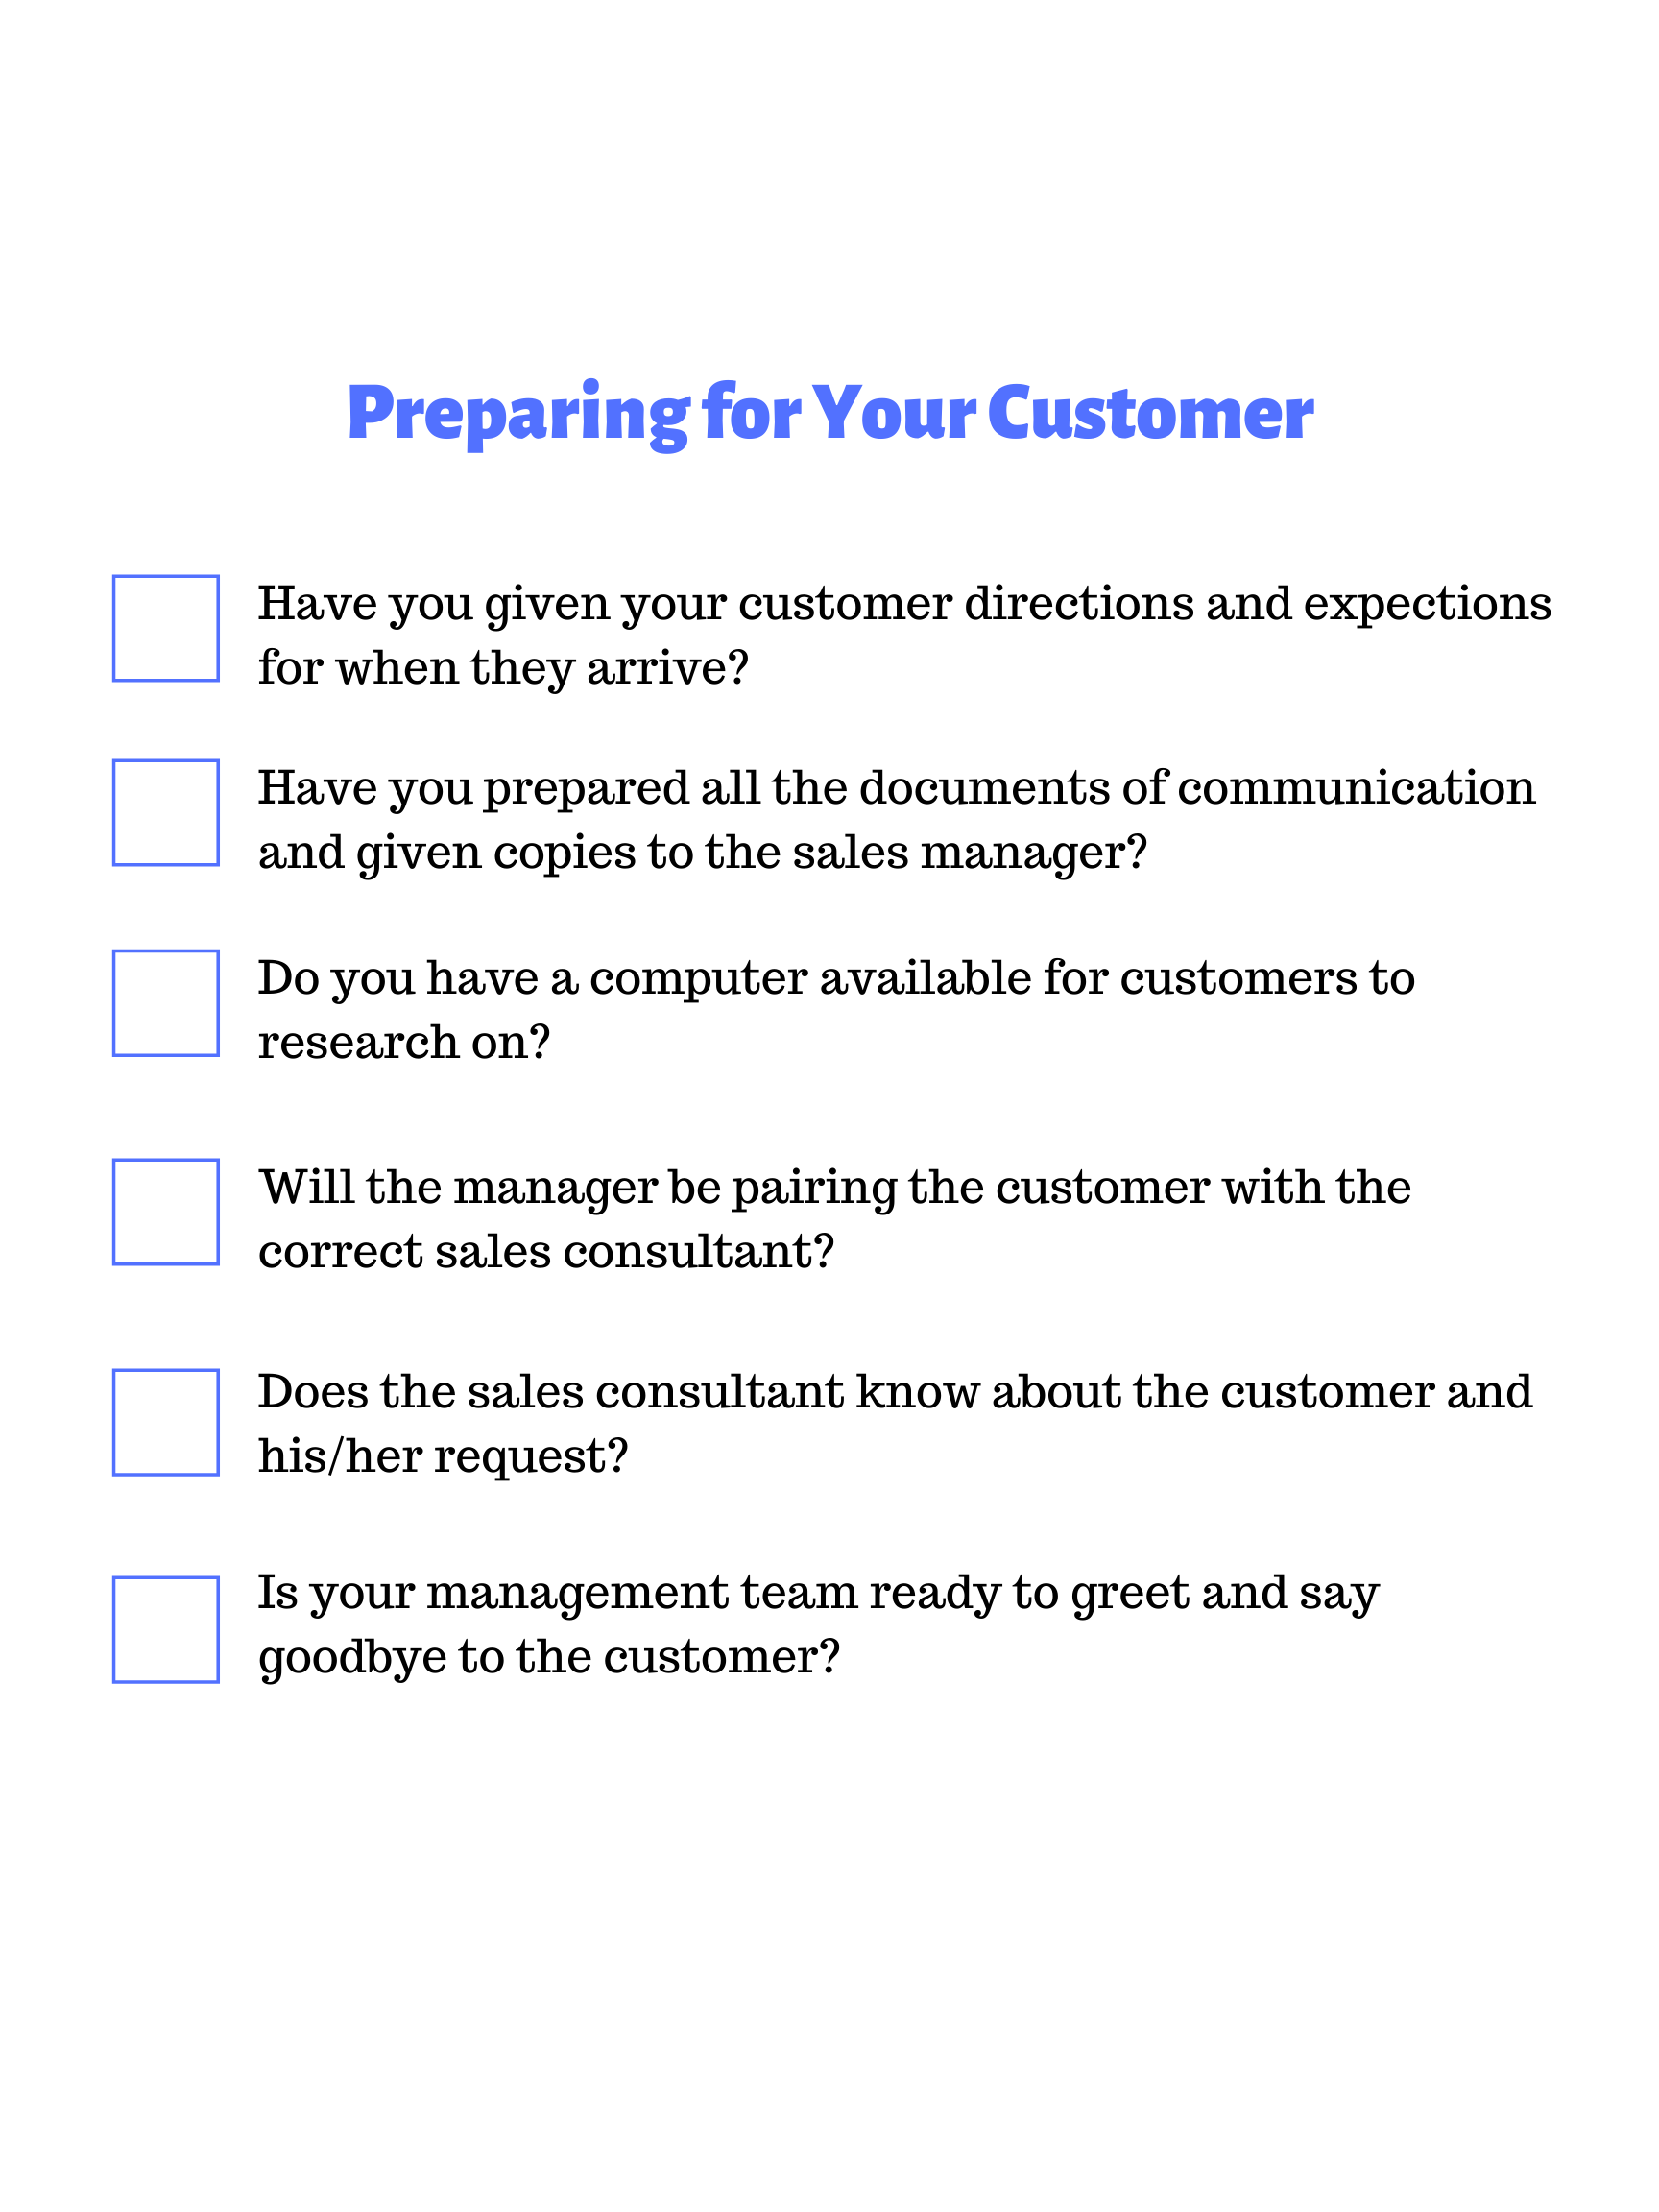 Preparing for Your Customer